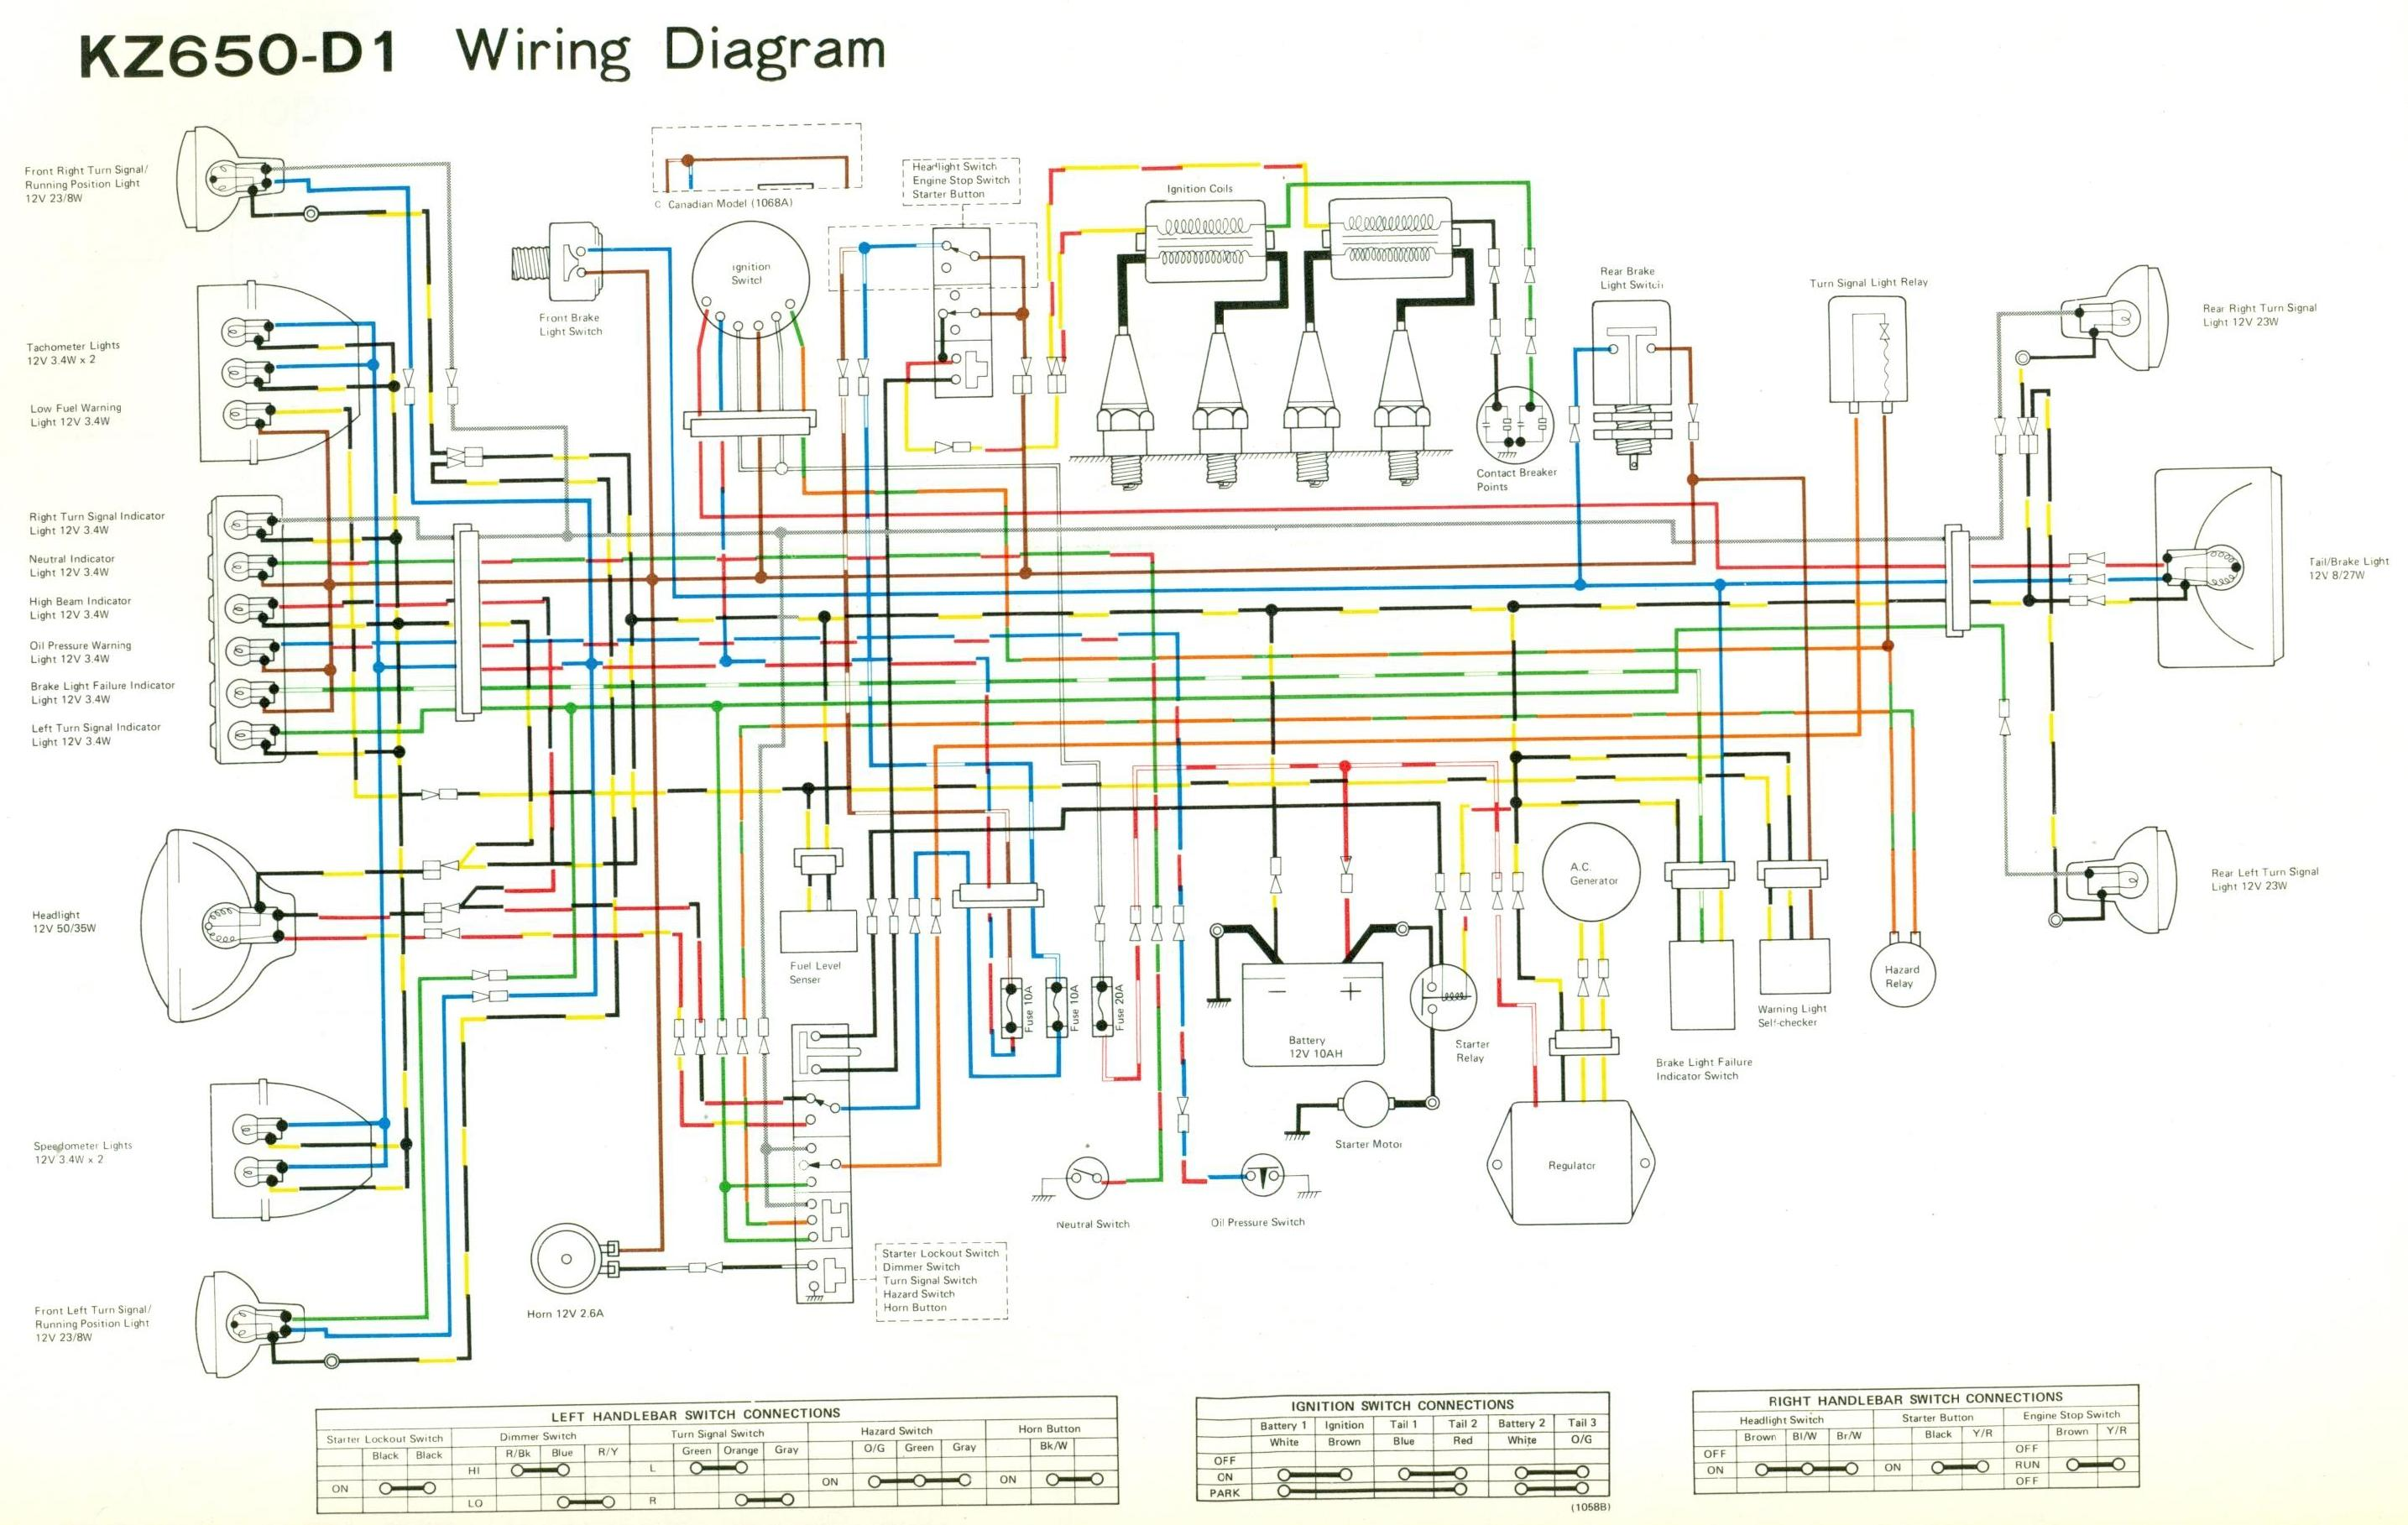 wiring diagrams rh oregonmotorcycleparts com Push Button Switch Wiring Diagram Push Button Switch Wiring Diagram